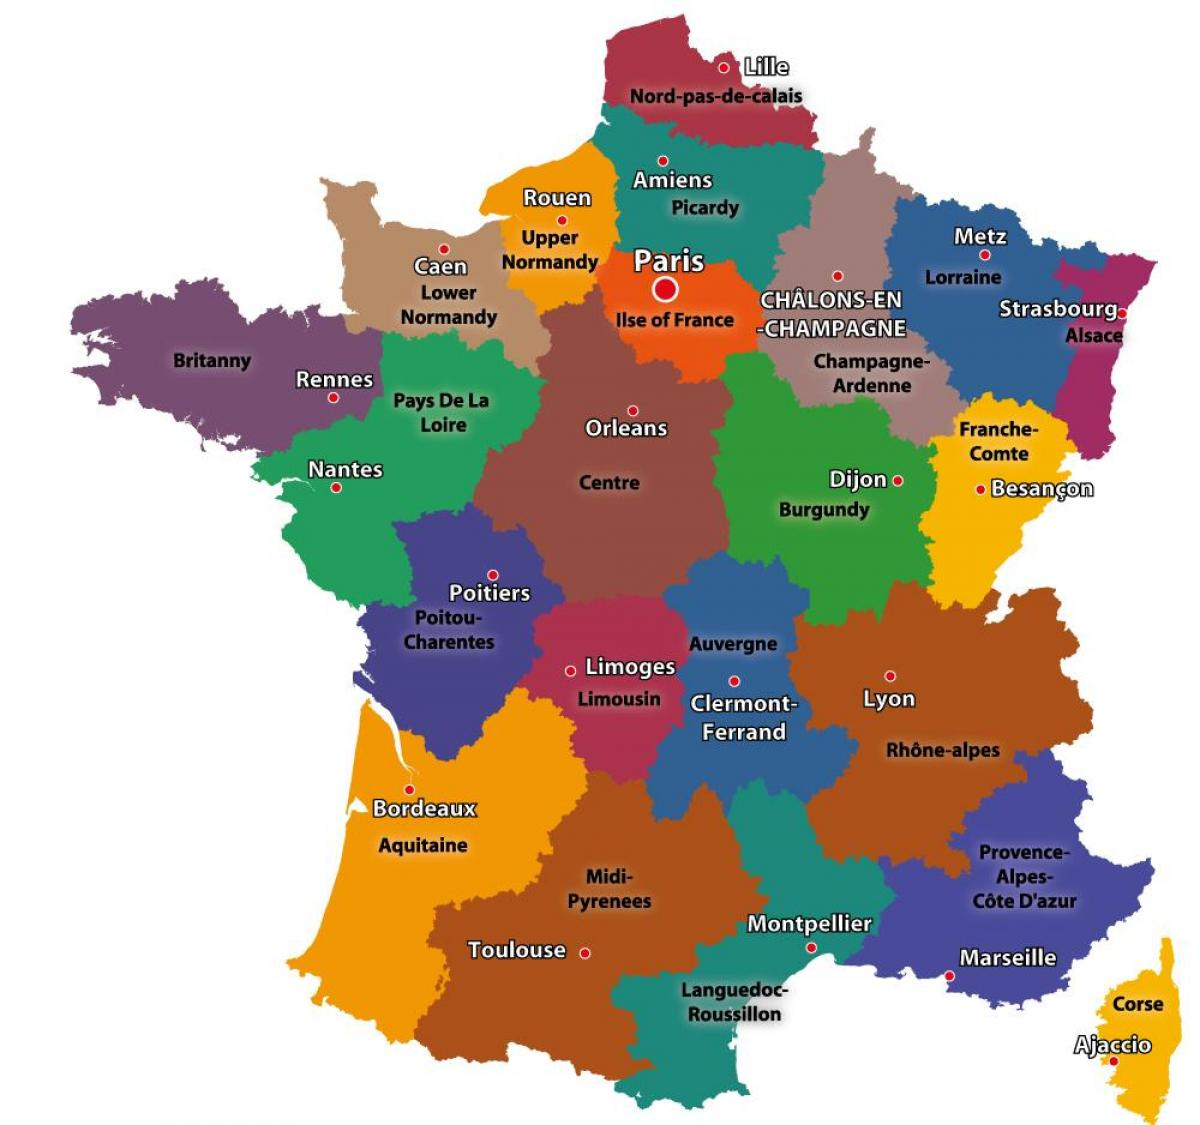 carte de la France et de Paris